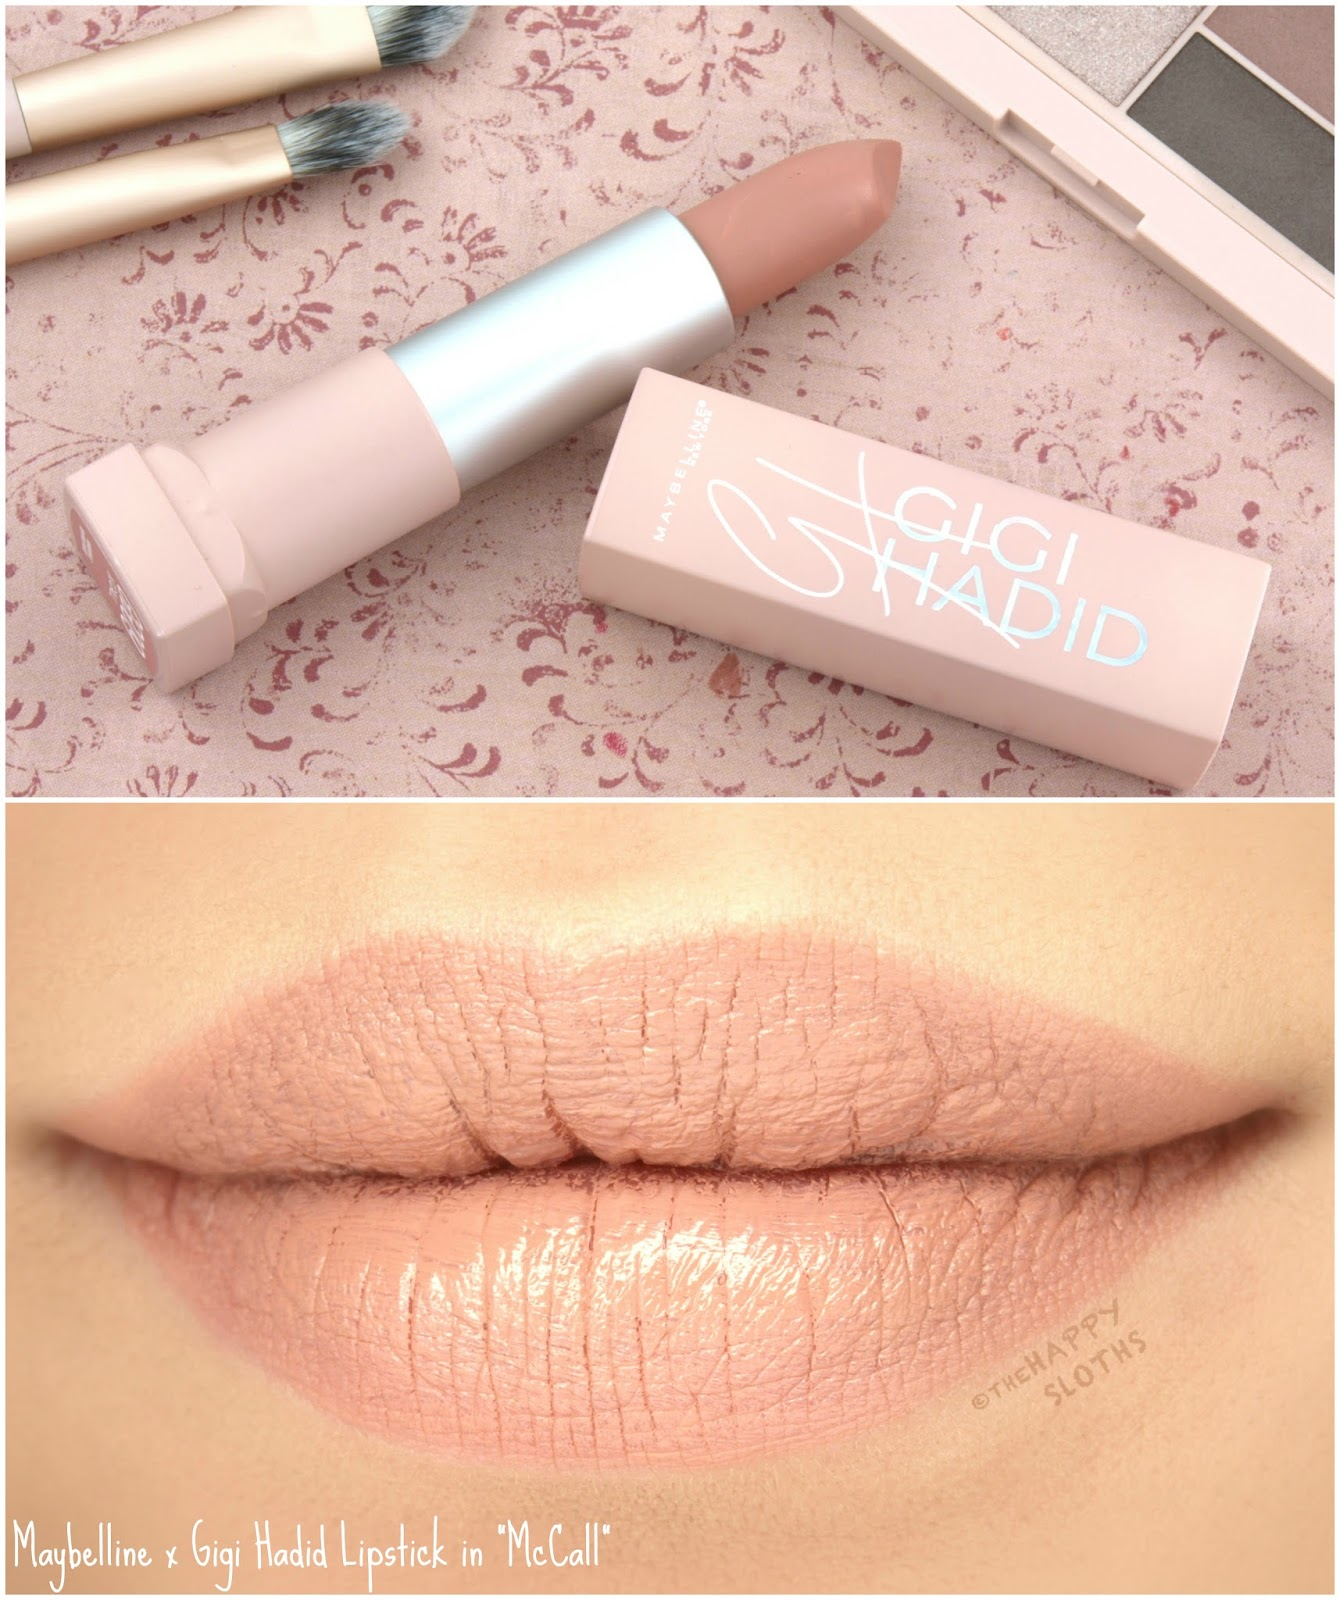 """Maybelline x Gigi Hadid Lipstick in """"McCall"""": Review and Swatches"""